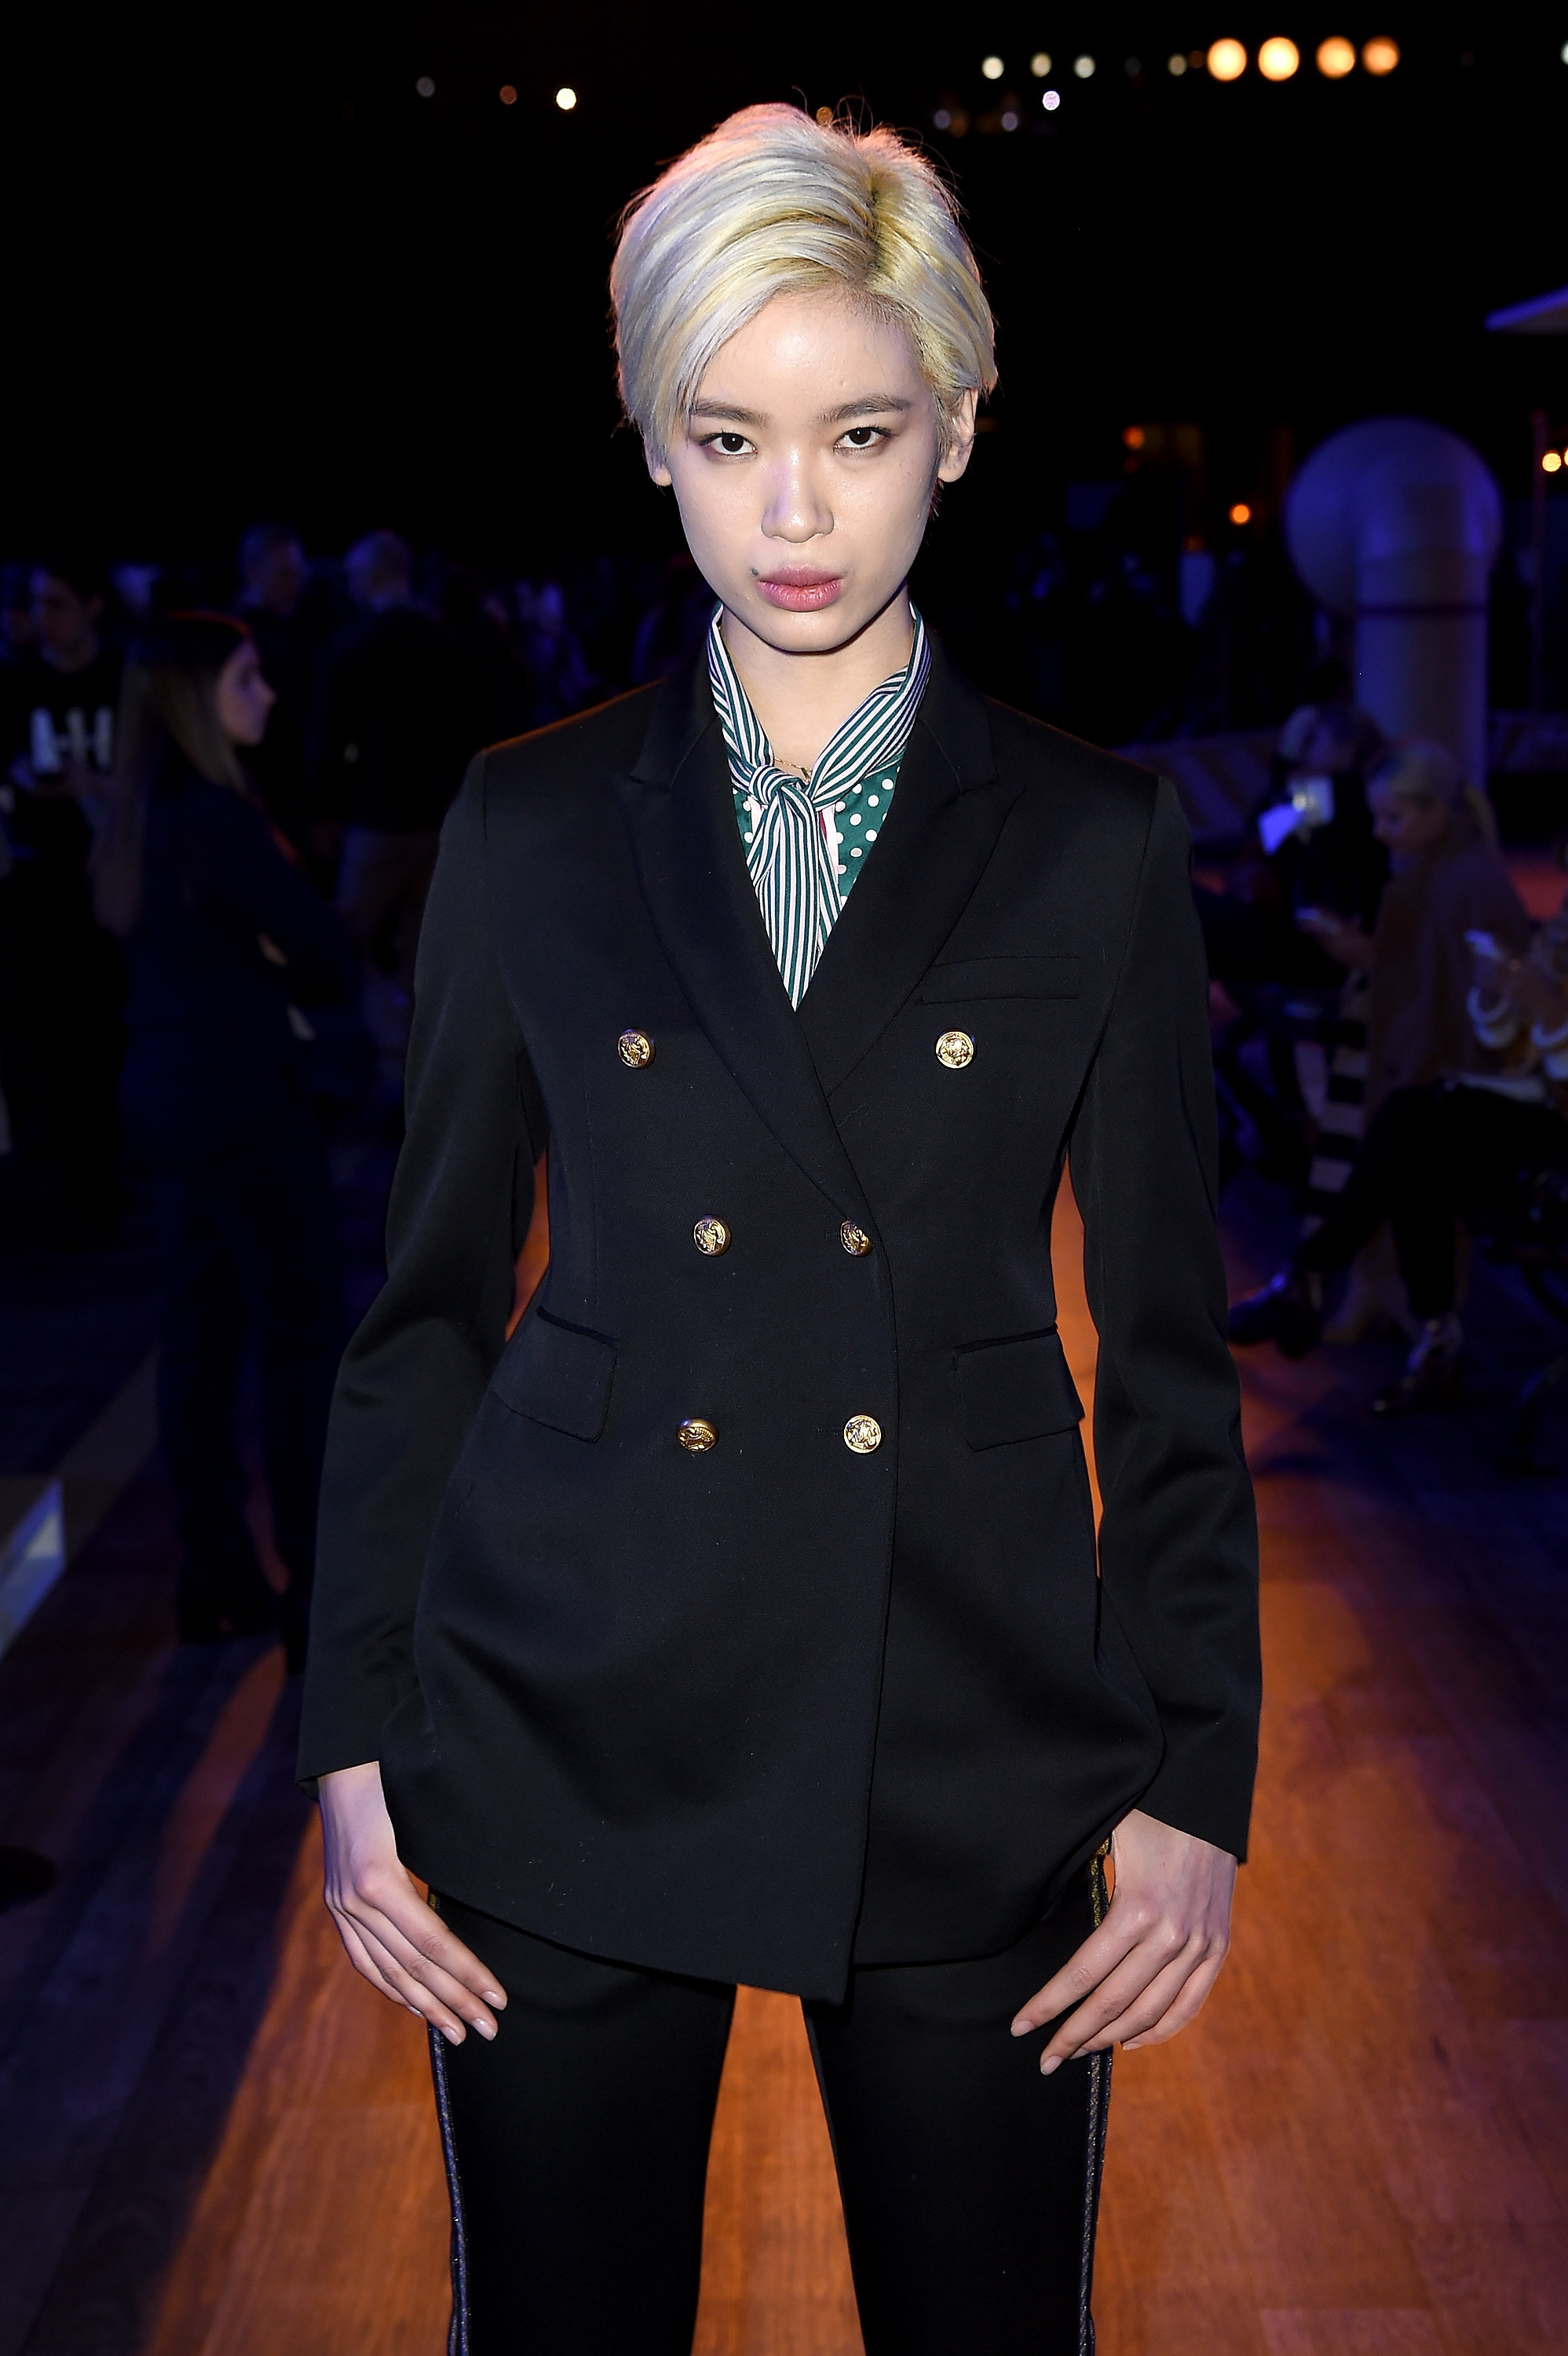 NEW YORK, NY - FEBRUARY 15: Model Kiki Kang attends the Tommy Hilfiger Women's Fall 2016 show durong New York Fashion Week: The Shows at Park Avenue Armory on February 15, 2016 in New York City. (Photo by Nicholas Hunt/Getty Images for Tommy Hilfiger)